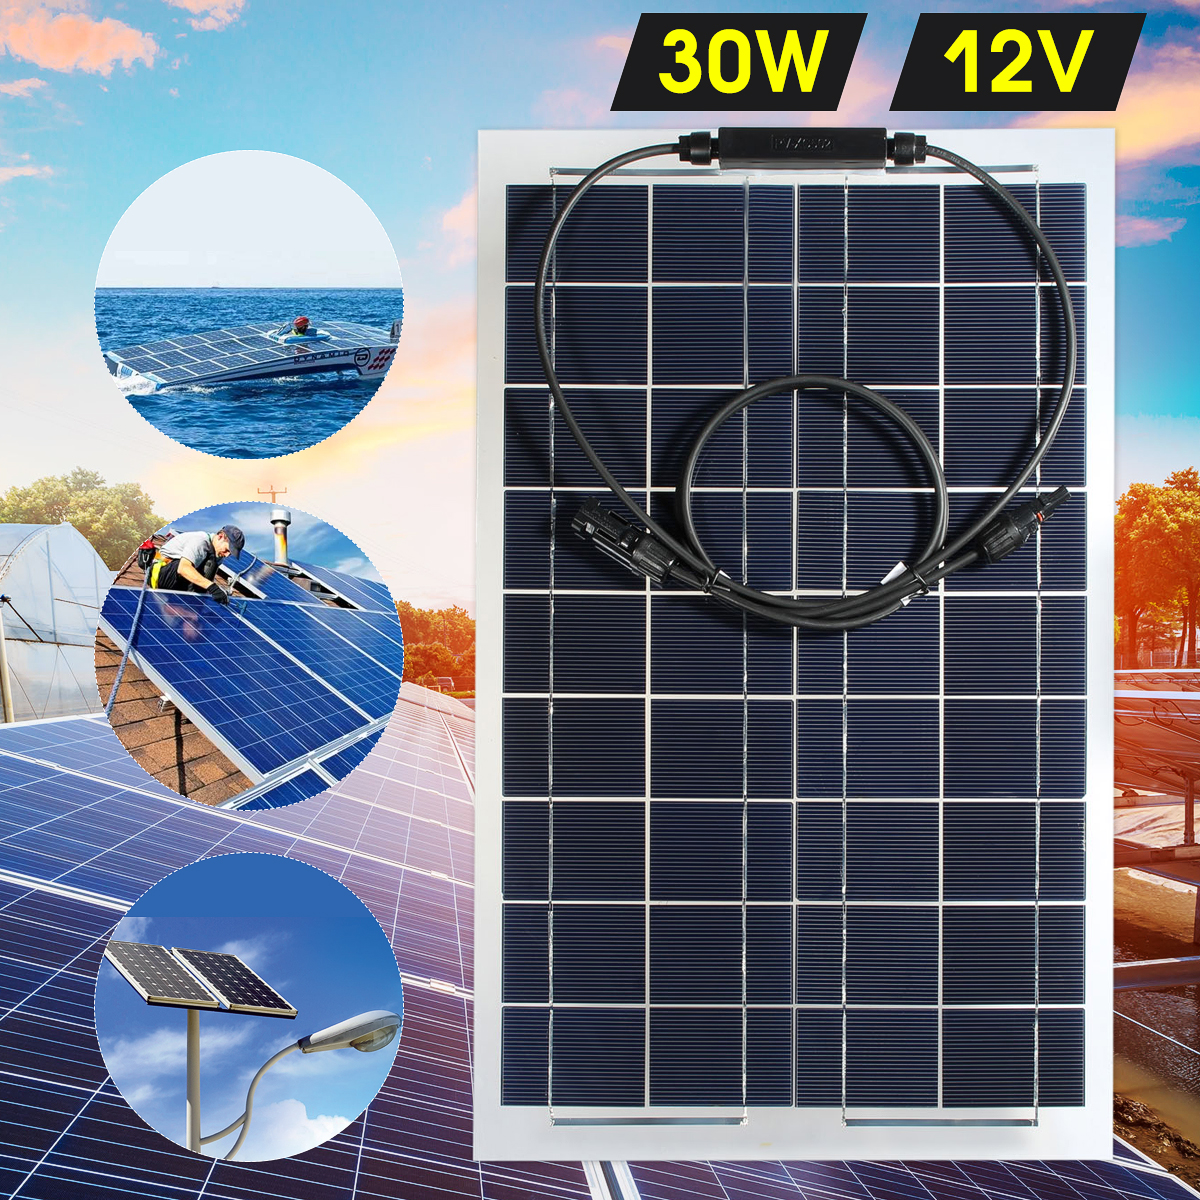 LEORY Flexible Solar Panel Plate 12V 30W Solar Charger For Car Battery 12V Sunpower Monocrystalline Silicon Cells Module Kit leory 12v 4 5w solar panel portable monocrystalline solar cells power charger diy module battery system for car automobile boat